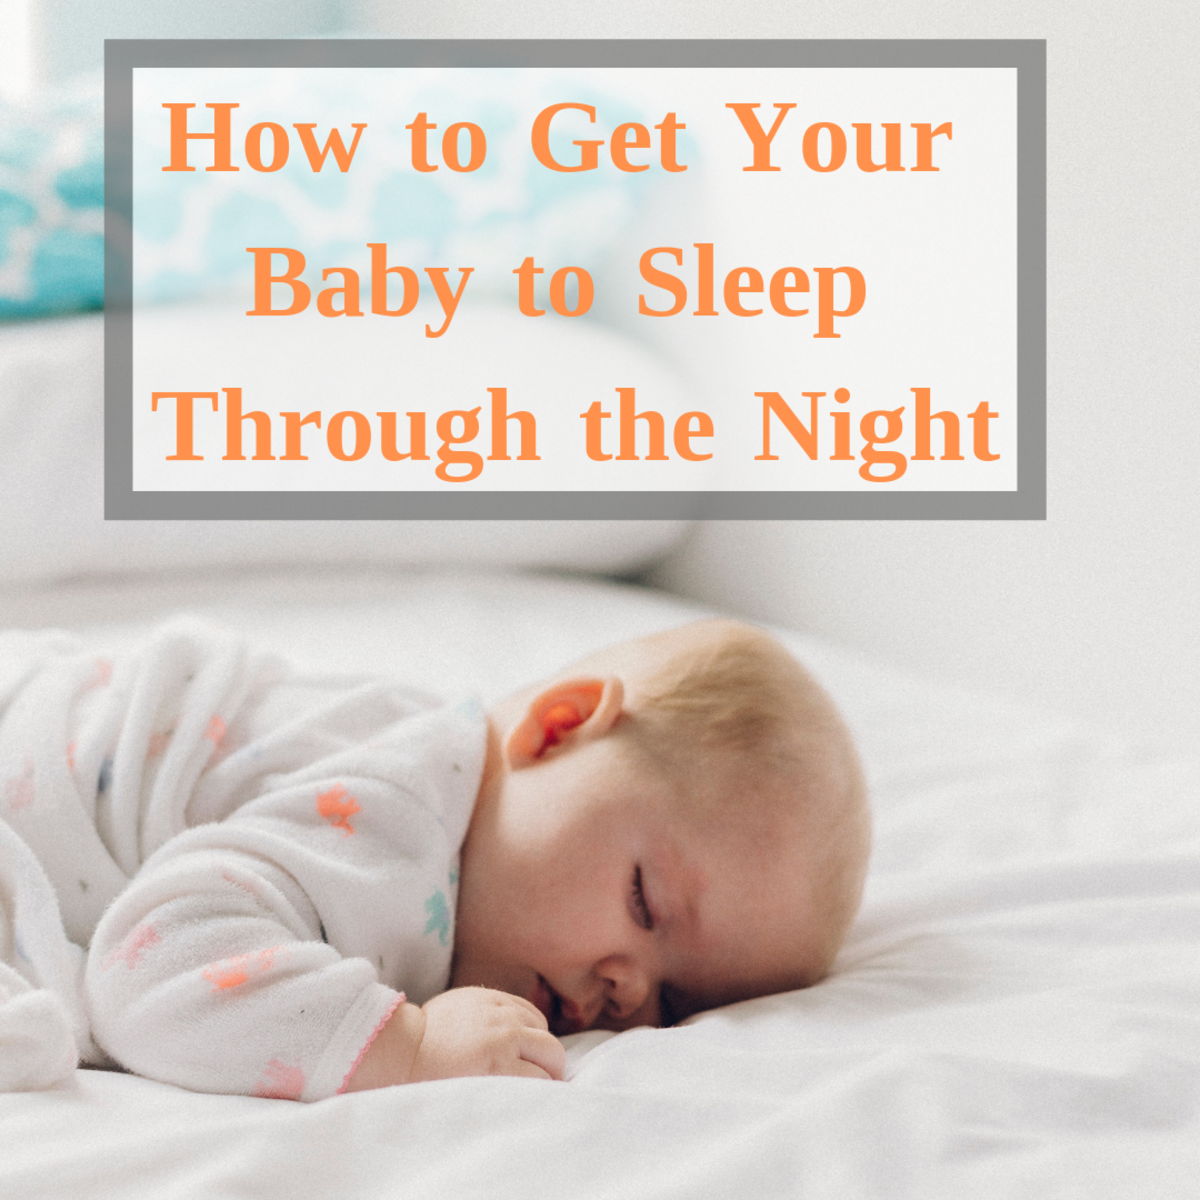 Here's a great method for helping your baby sleep.